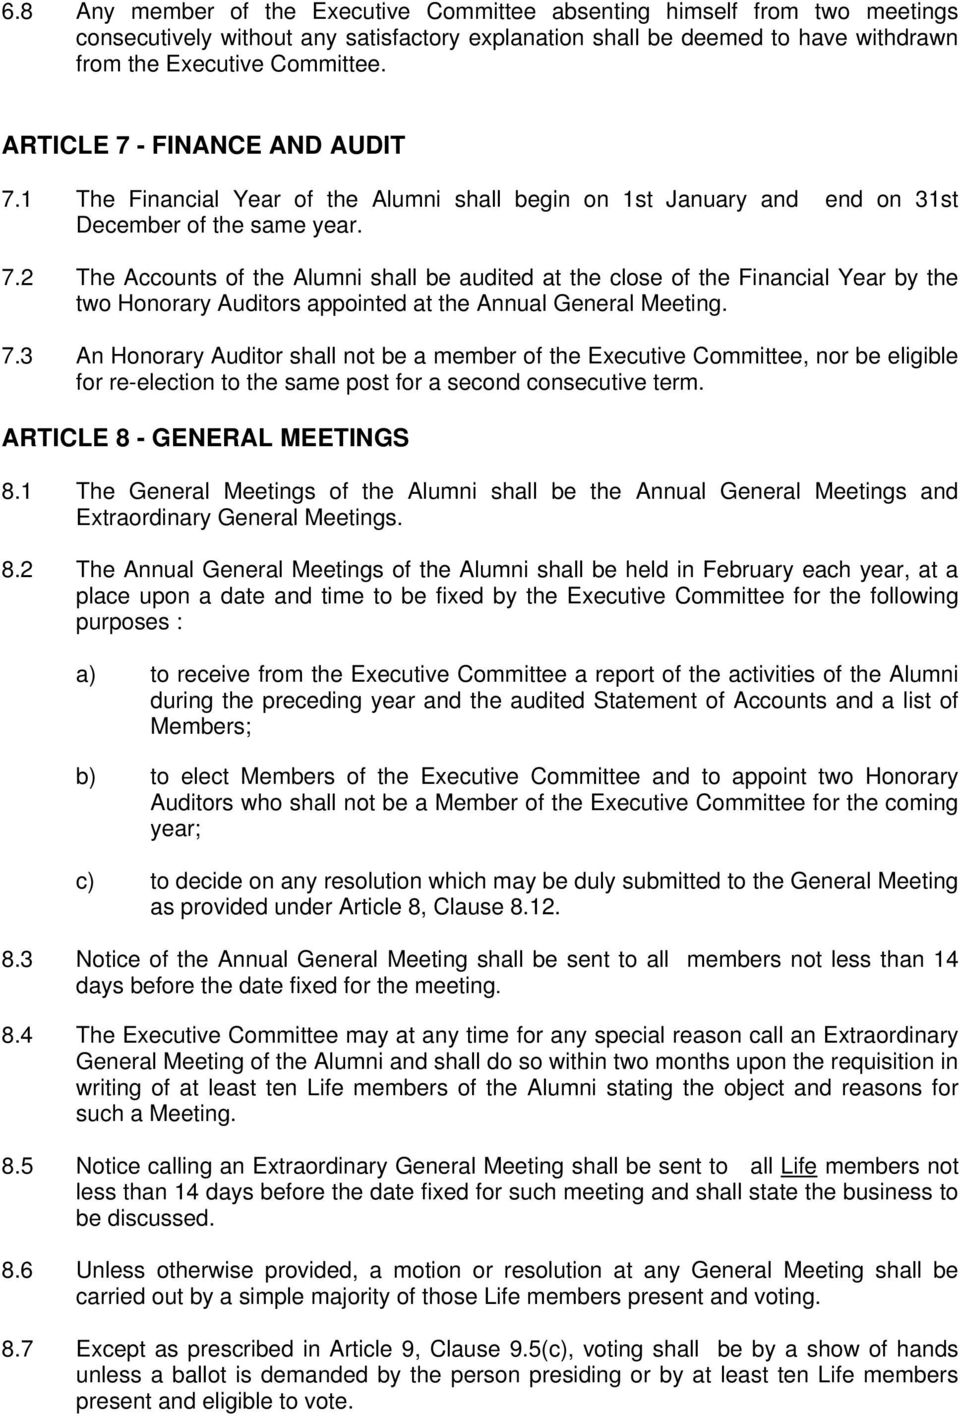 7.3 An Honorary Auditor shall not be a member of the Executive Committee, nor be eligible for re-election to the same post for a second consecutive term. ARTICLE 8 - GENERAL MEETINGS 8.